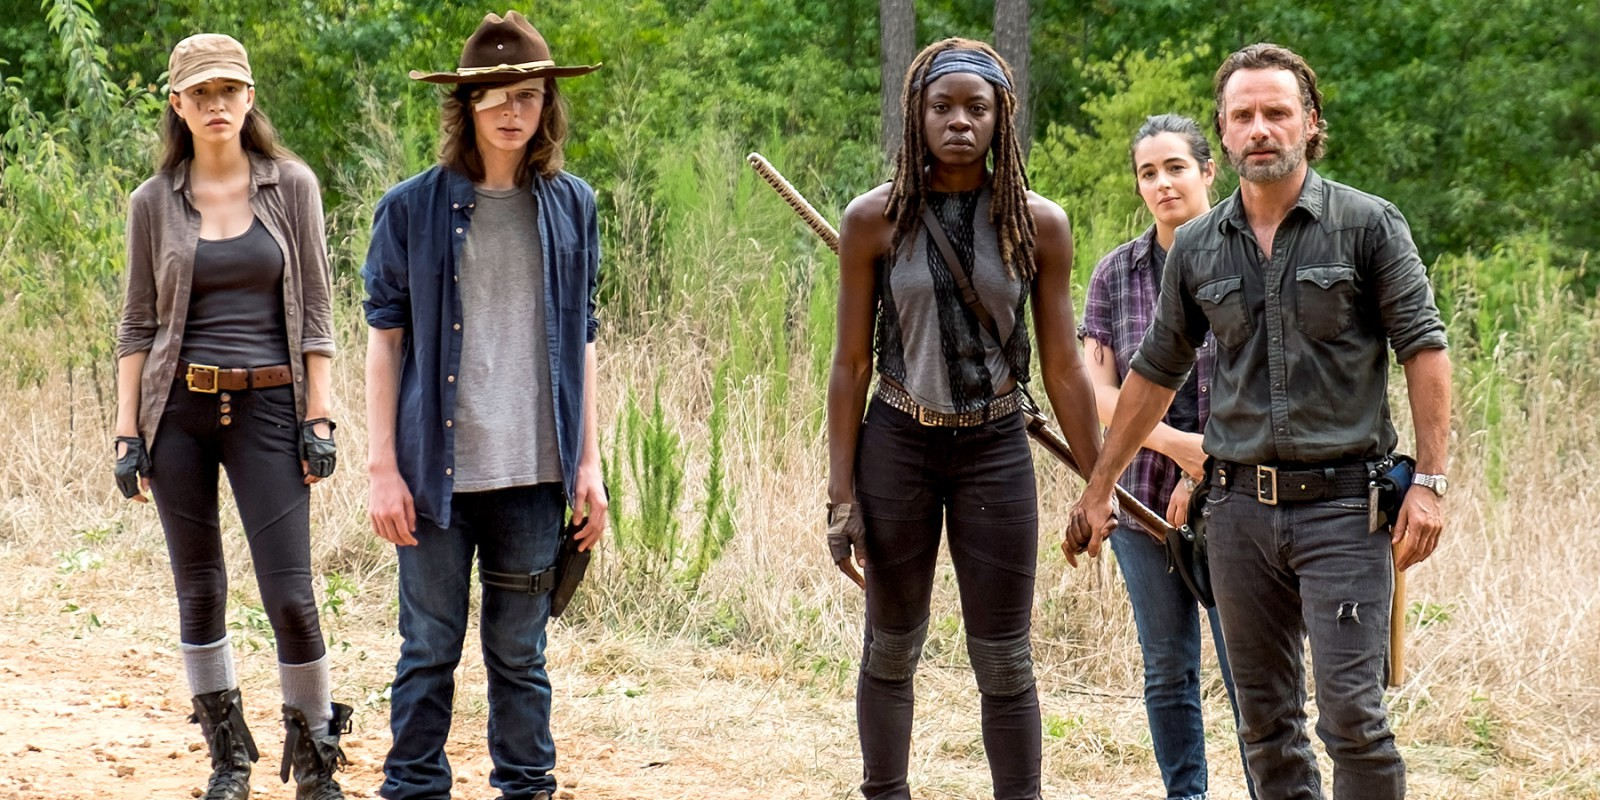 Rosita Carl Michonne Tara and Rick in The Walking Dead Walking Dead Season 9: Every Update You Need To Know